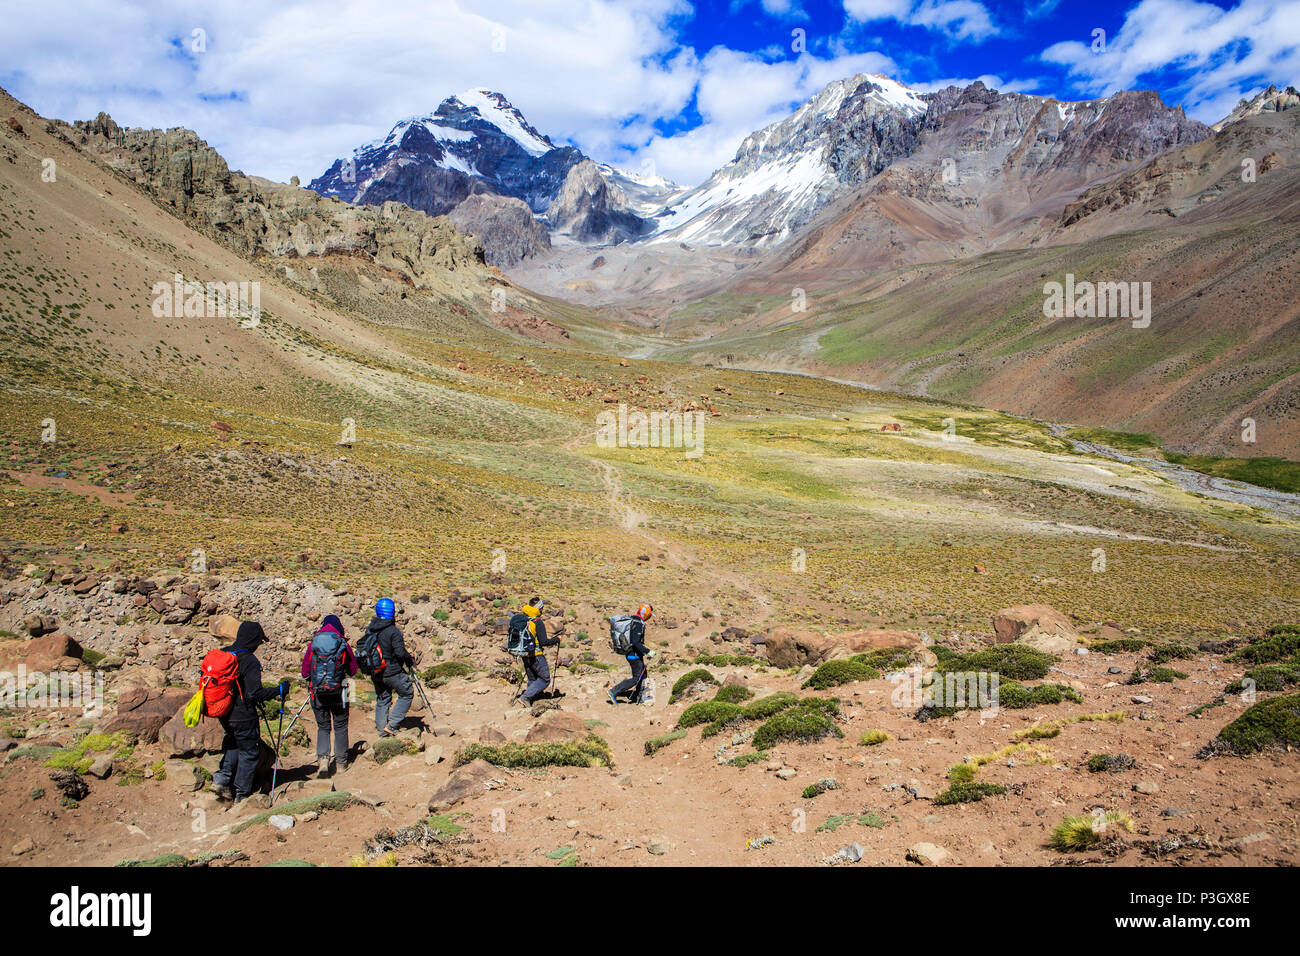 Mountaineers approaching Aconcagua Base Camp, Plaza de Argentina, Mendoza, Argentina - Stock Image